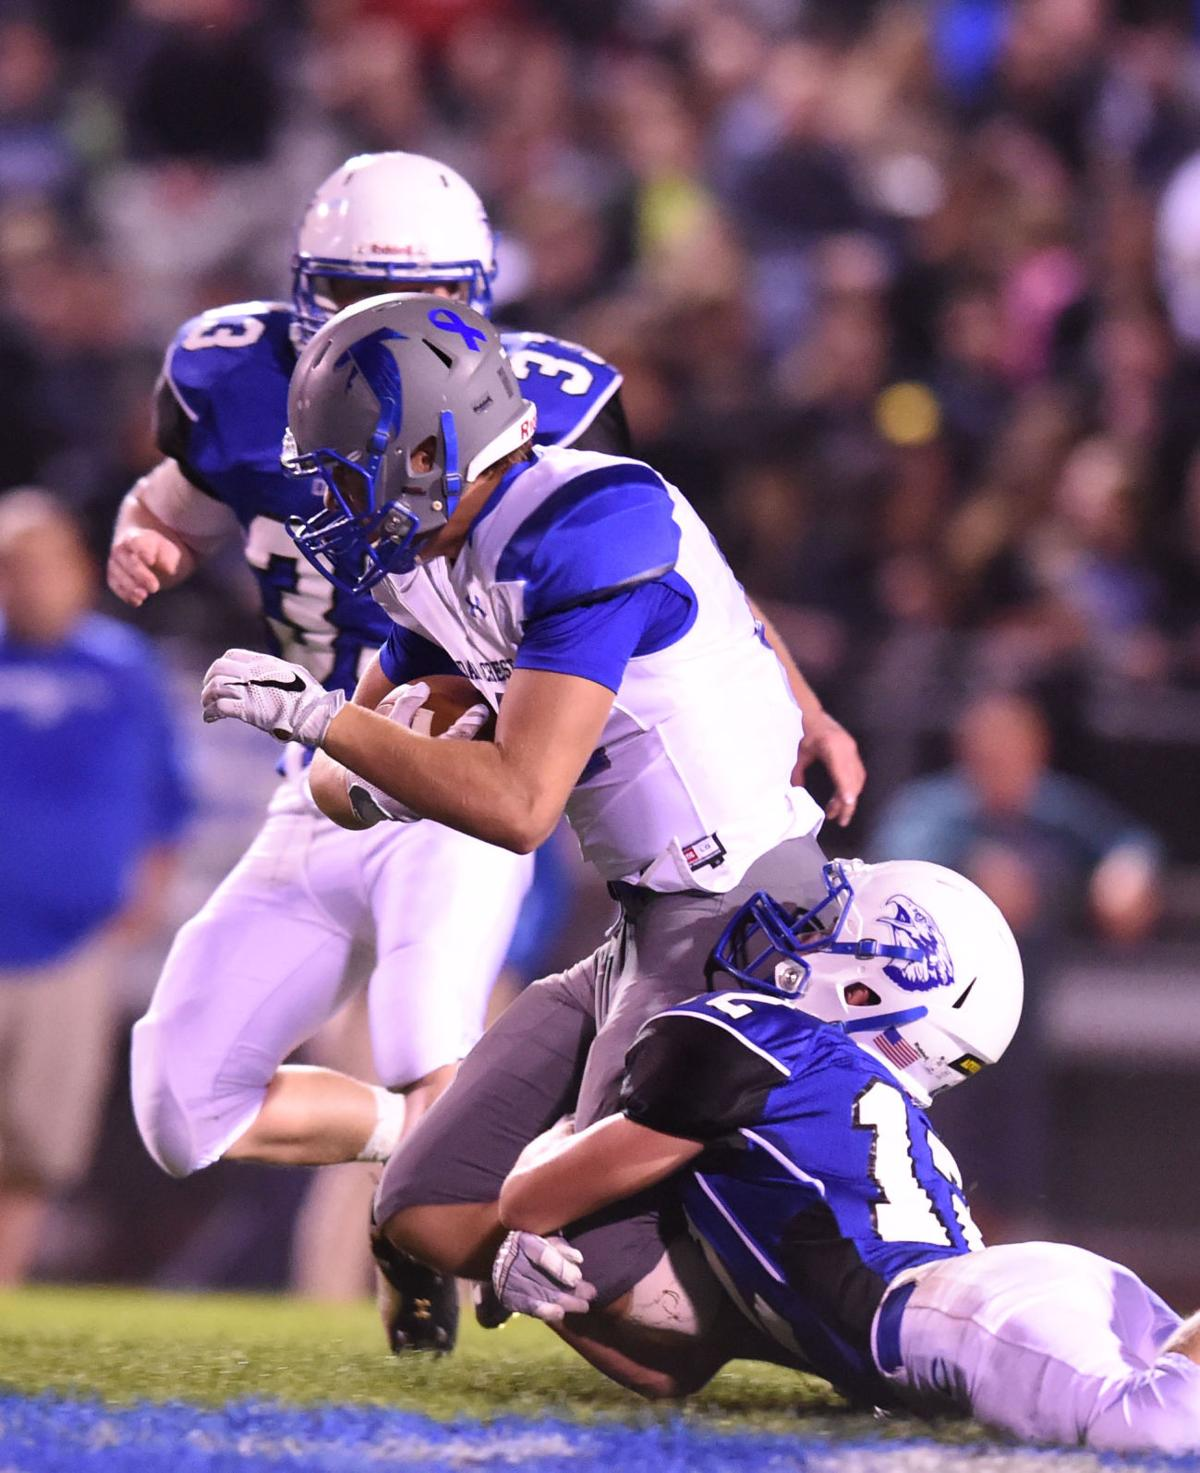 Cocalico Seizes 22-13 Win Over Cedar Crest In Section 2